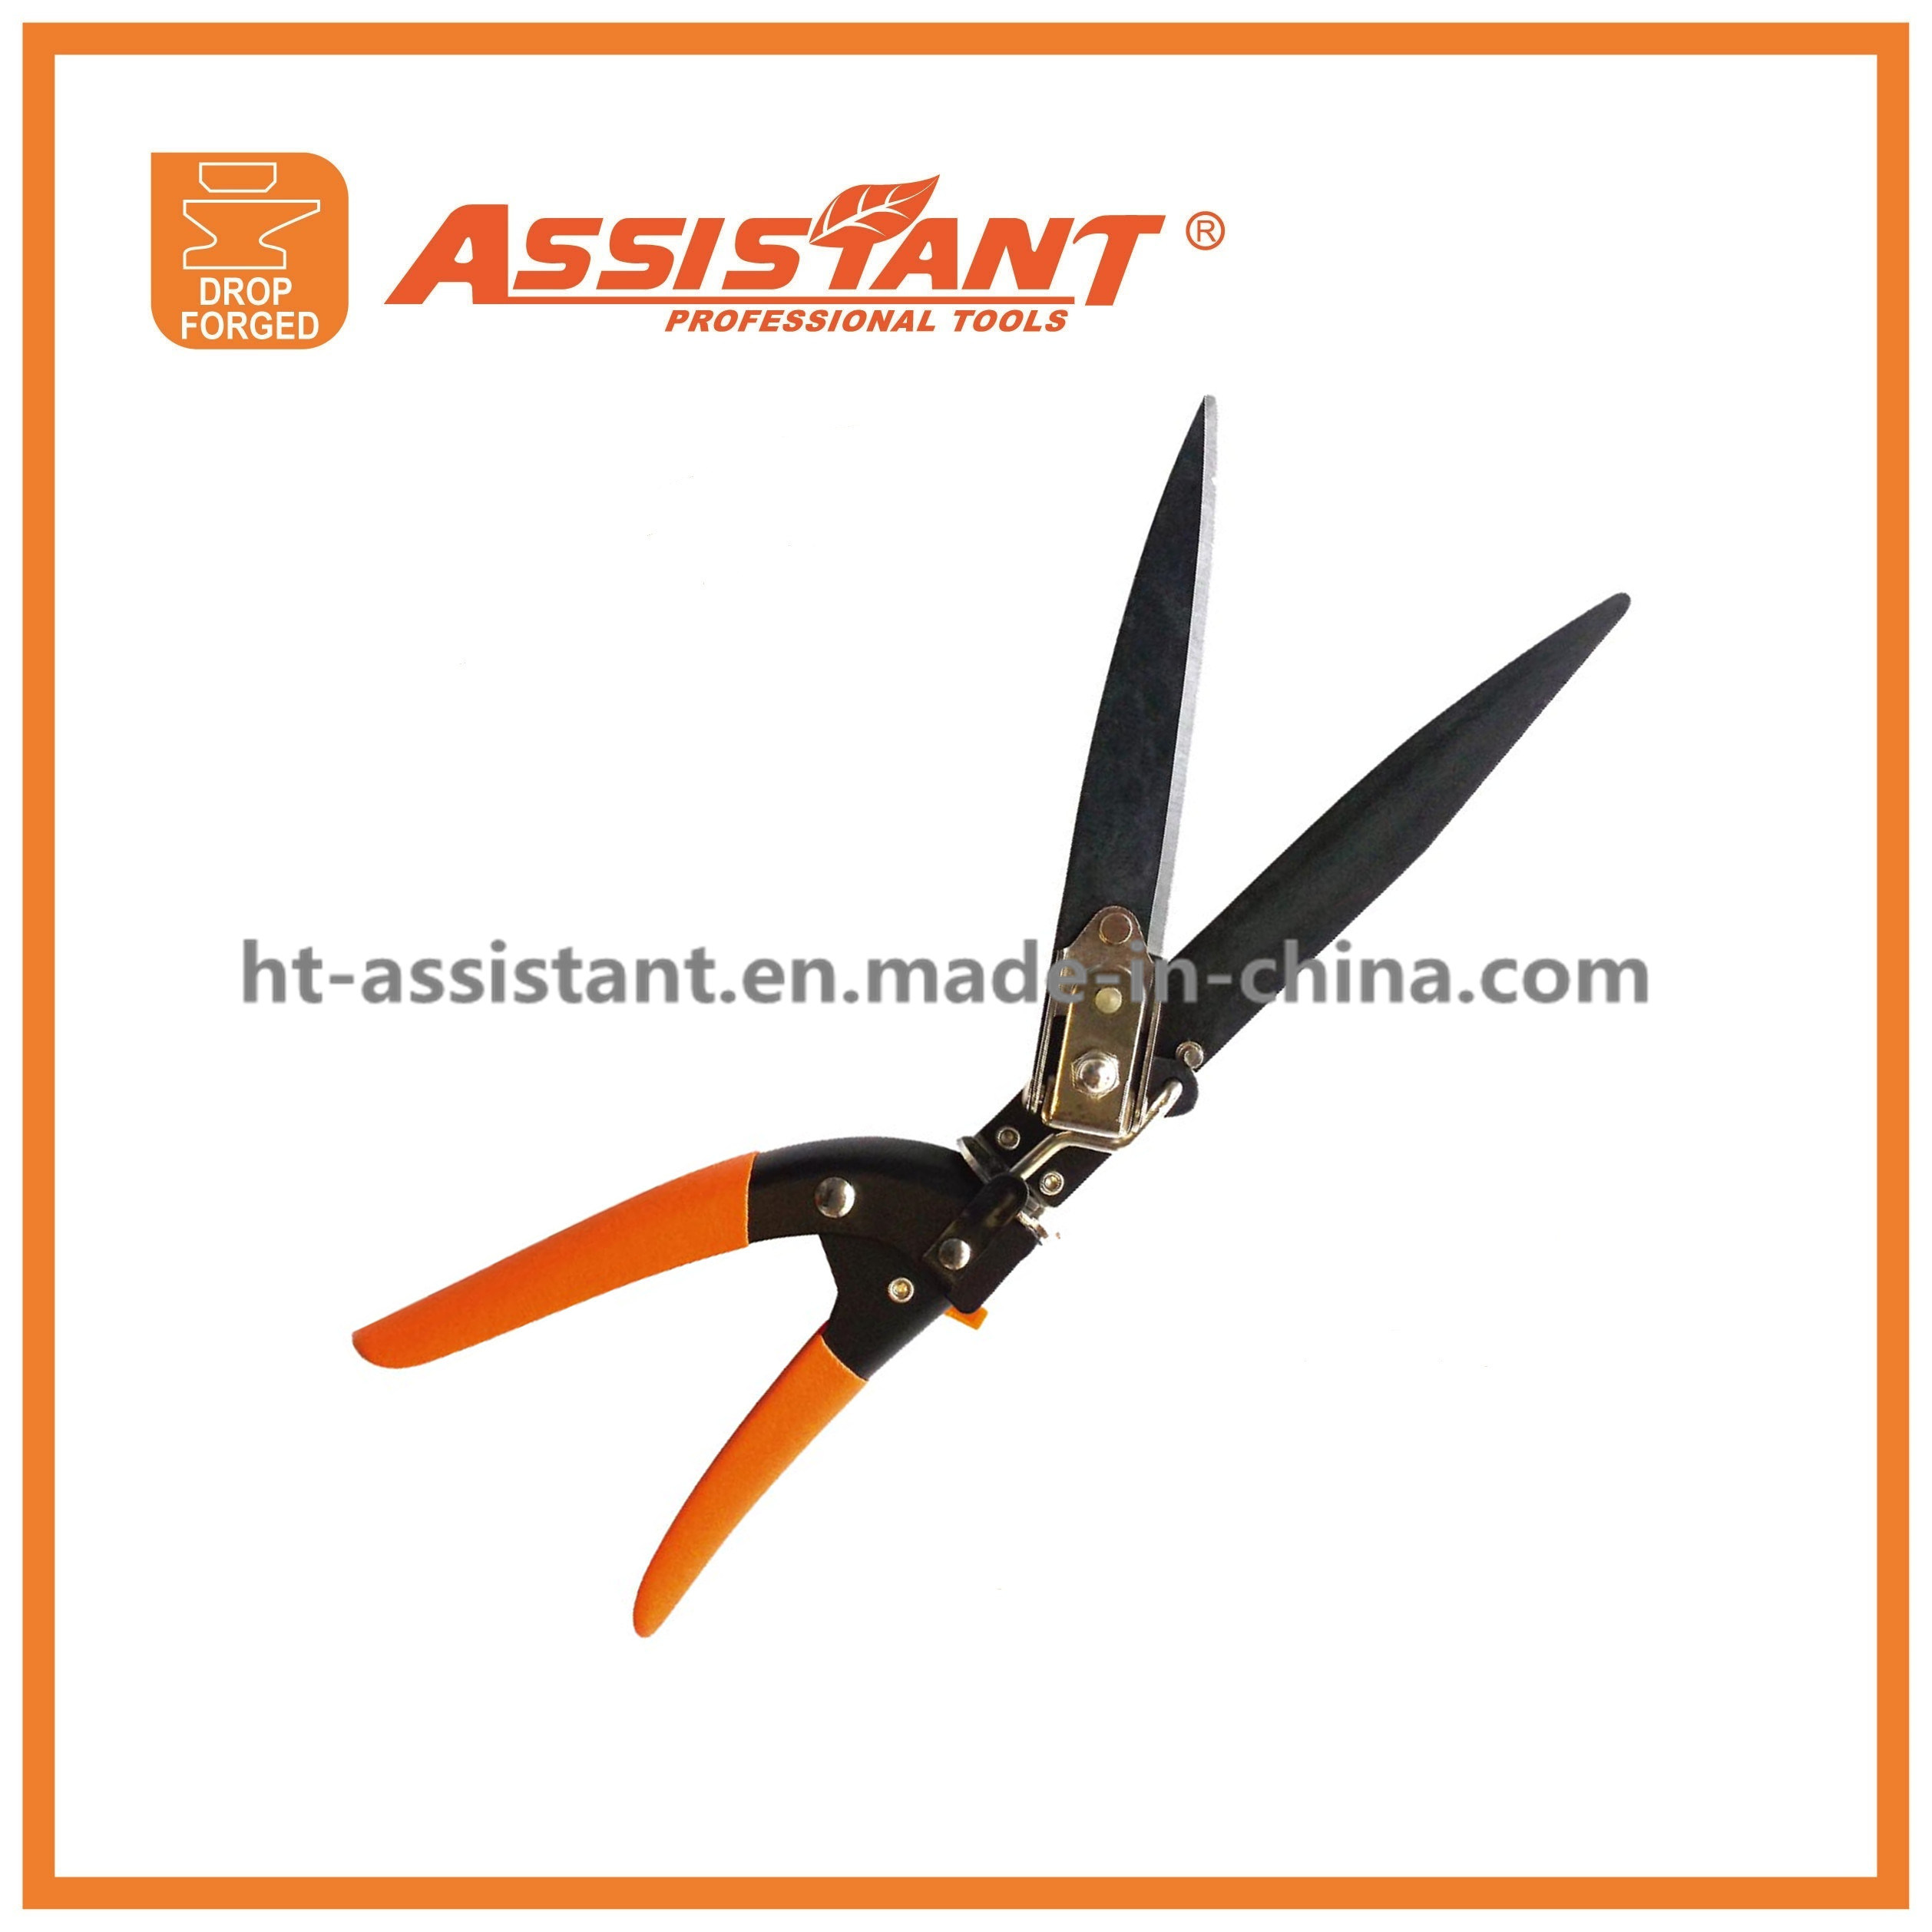 Garden Scissors and Trimmer 360 Degree Grass Swivel Shears